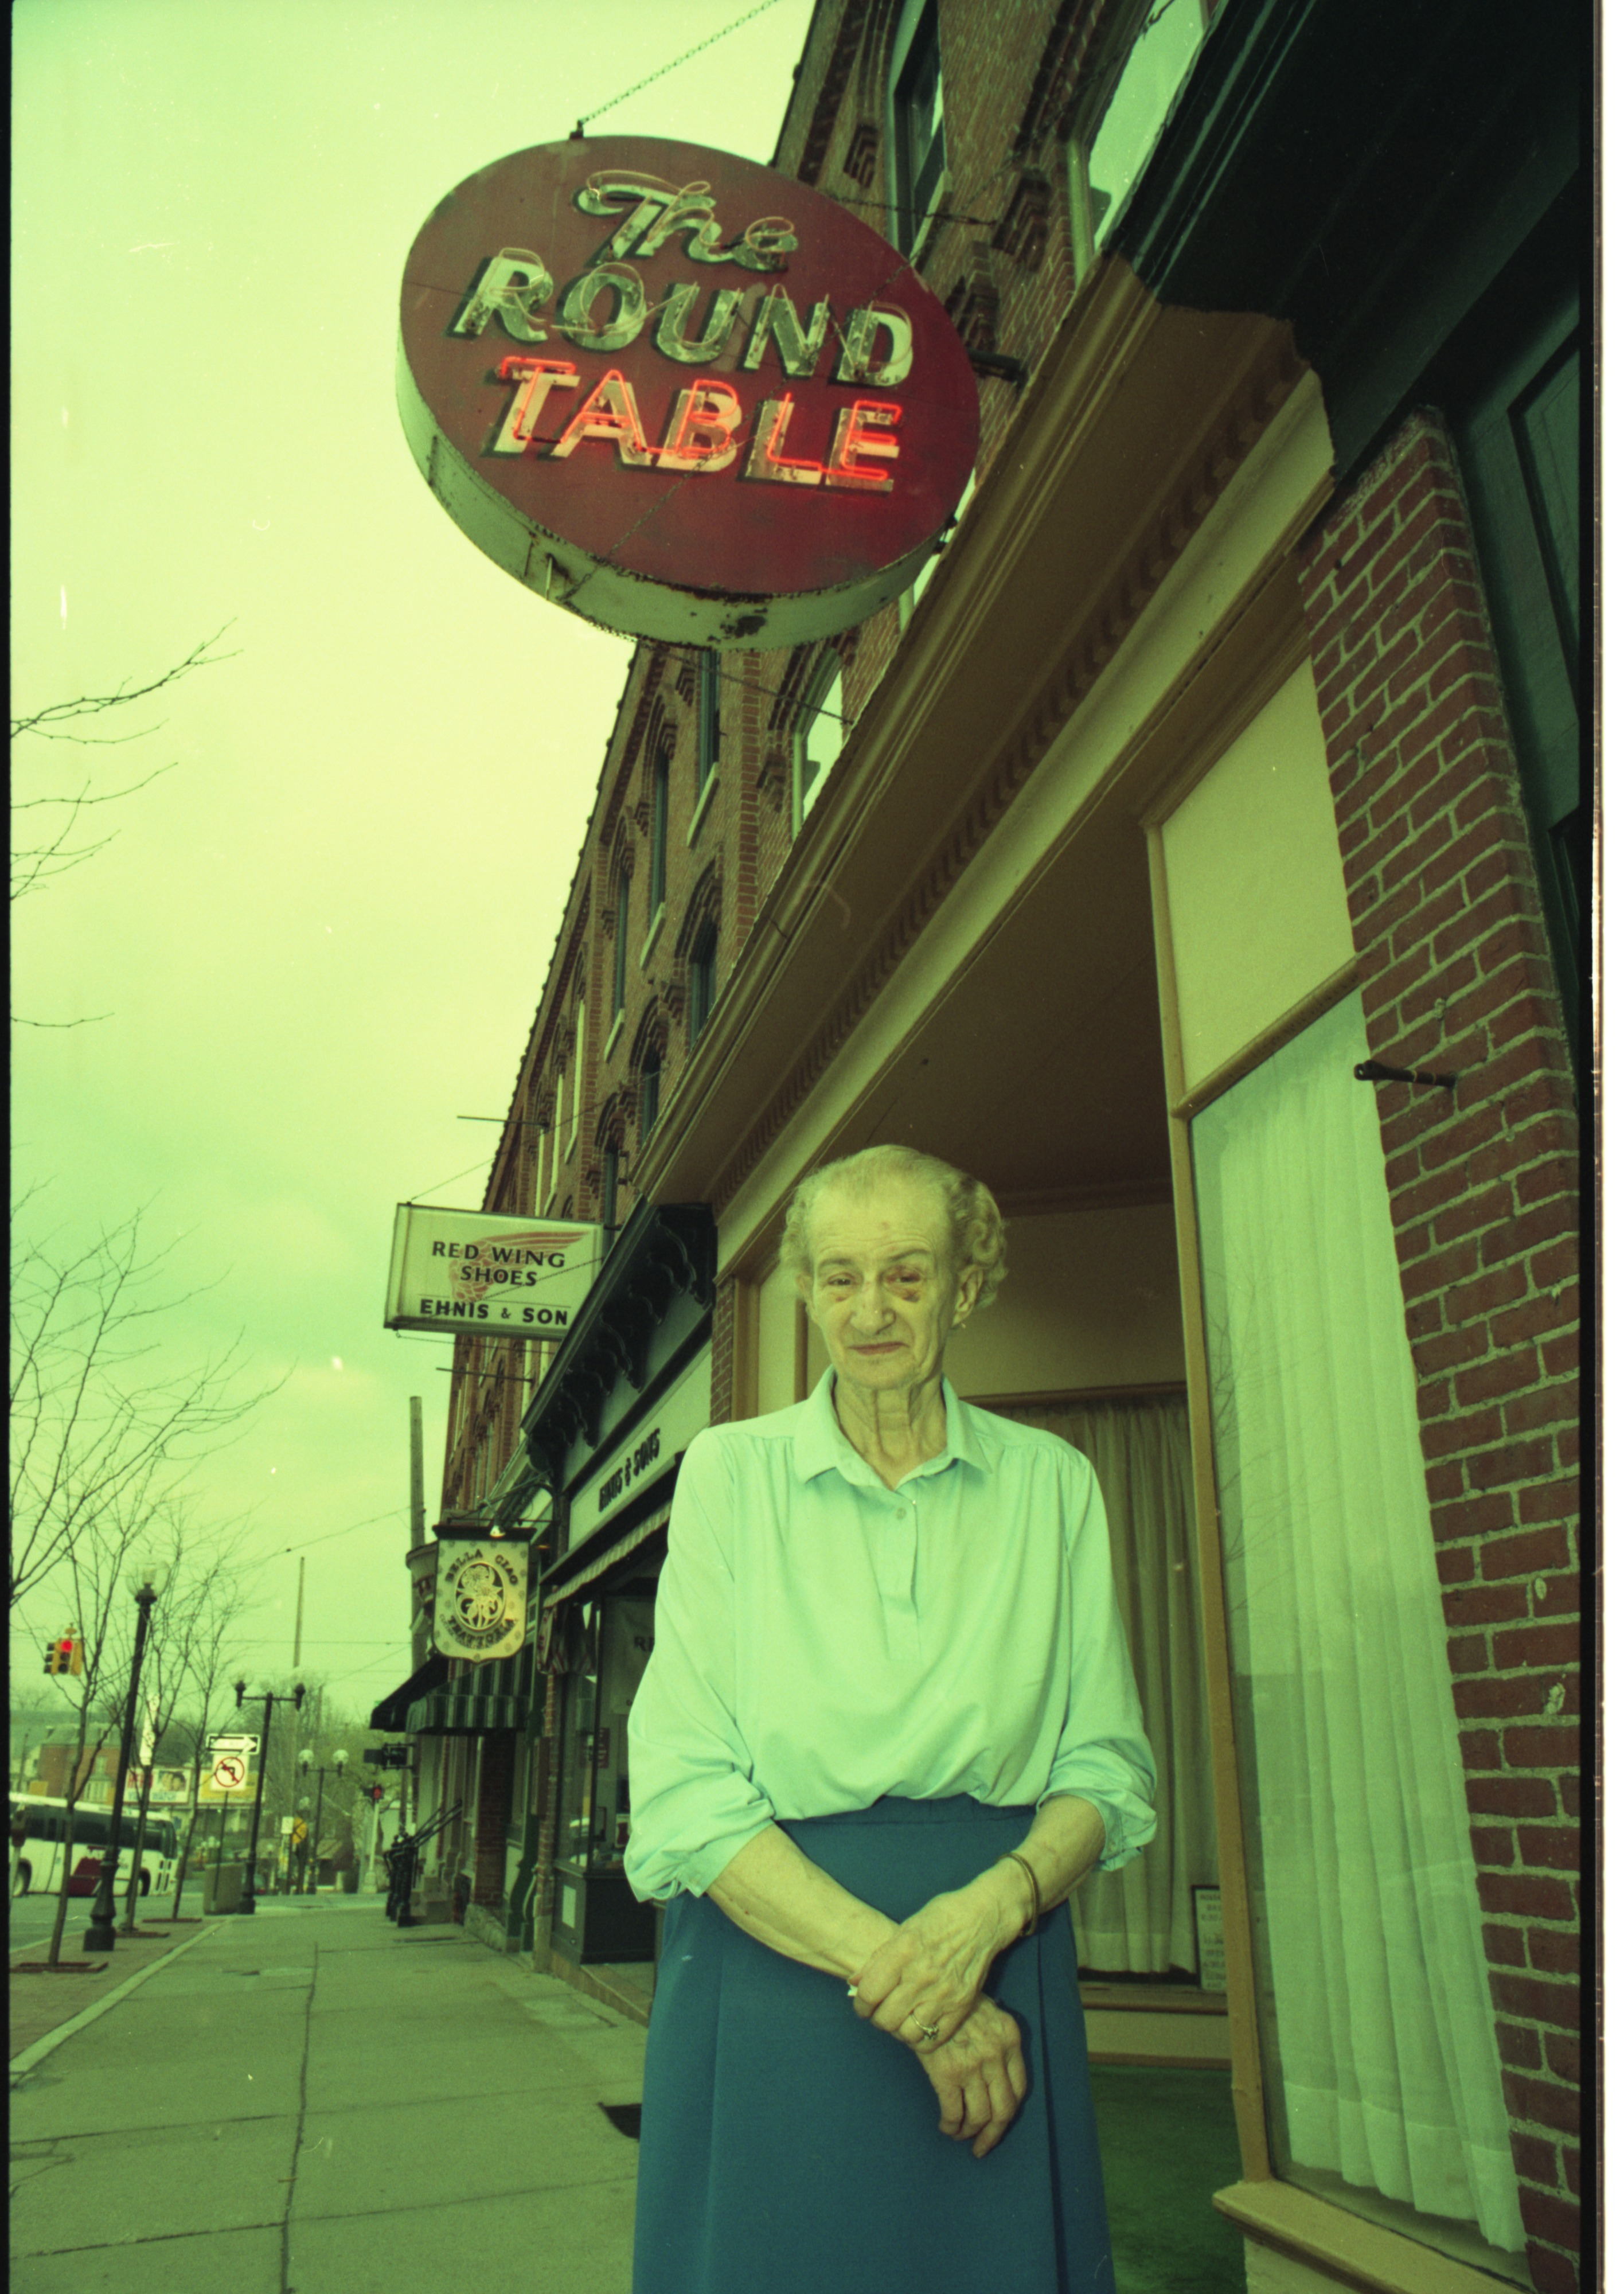 Roundtable Owner Evelyn Stack Sells Liberty Avenue Restaurant After 50 Years, May 1993 image